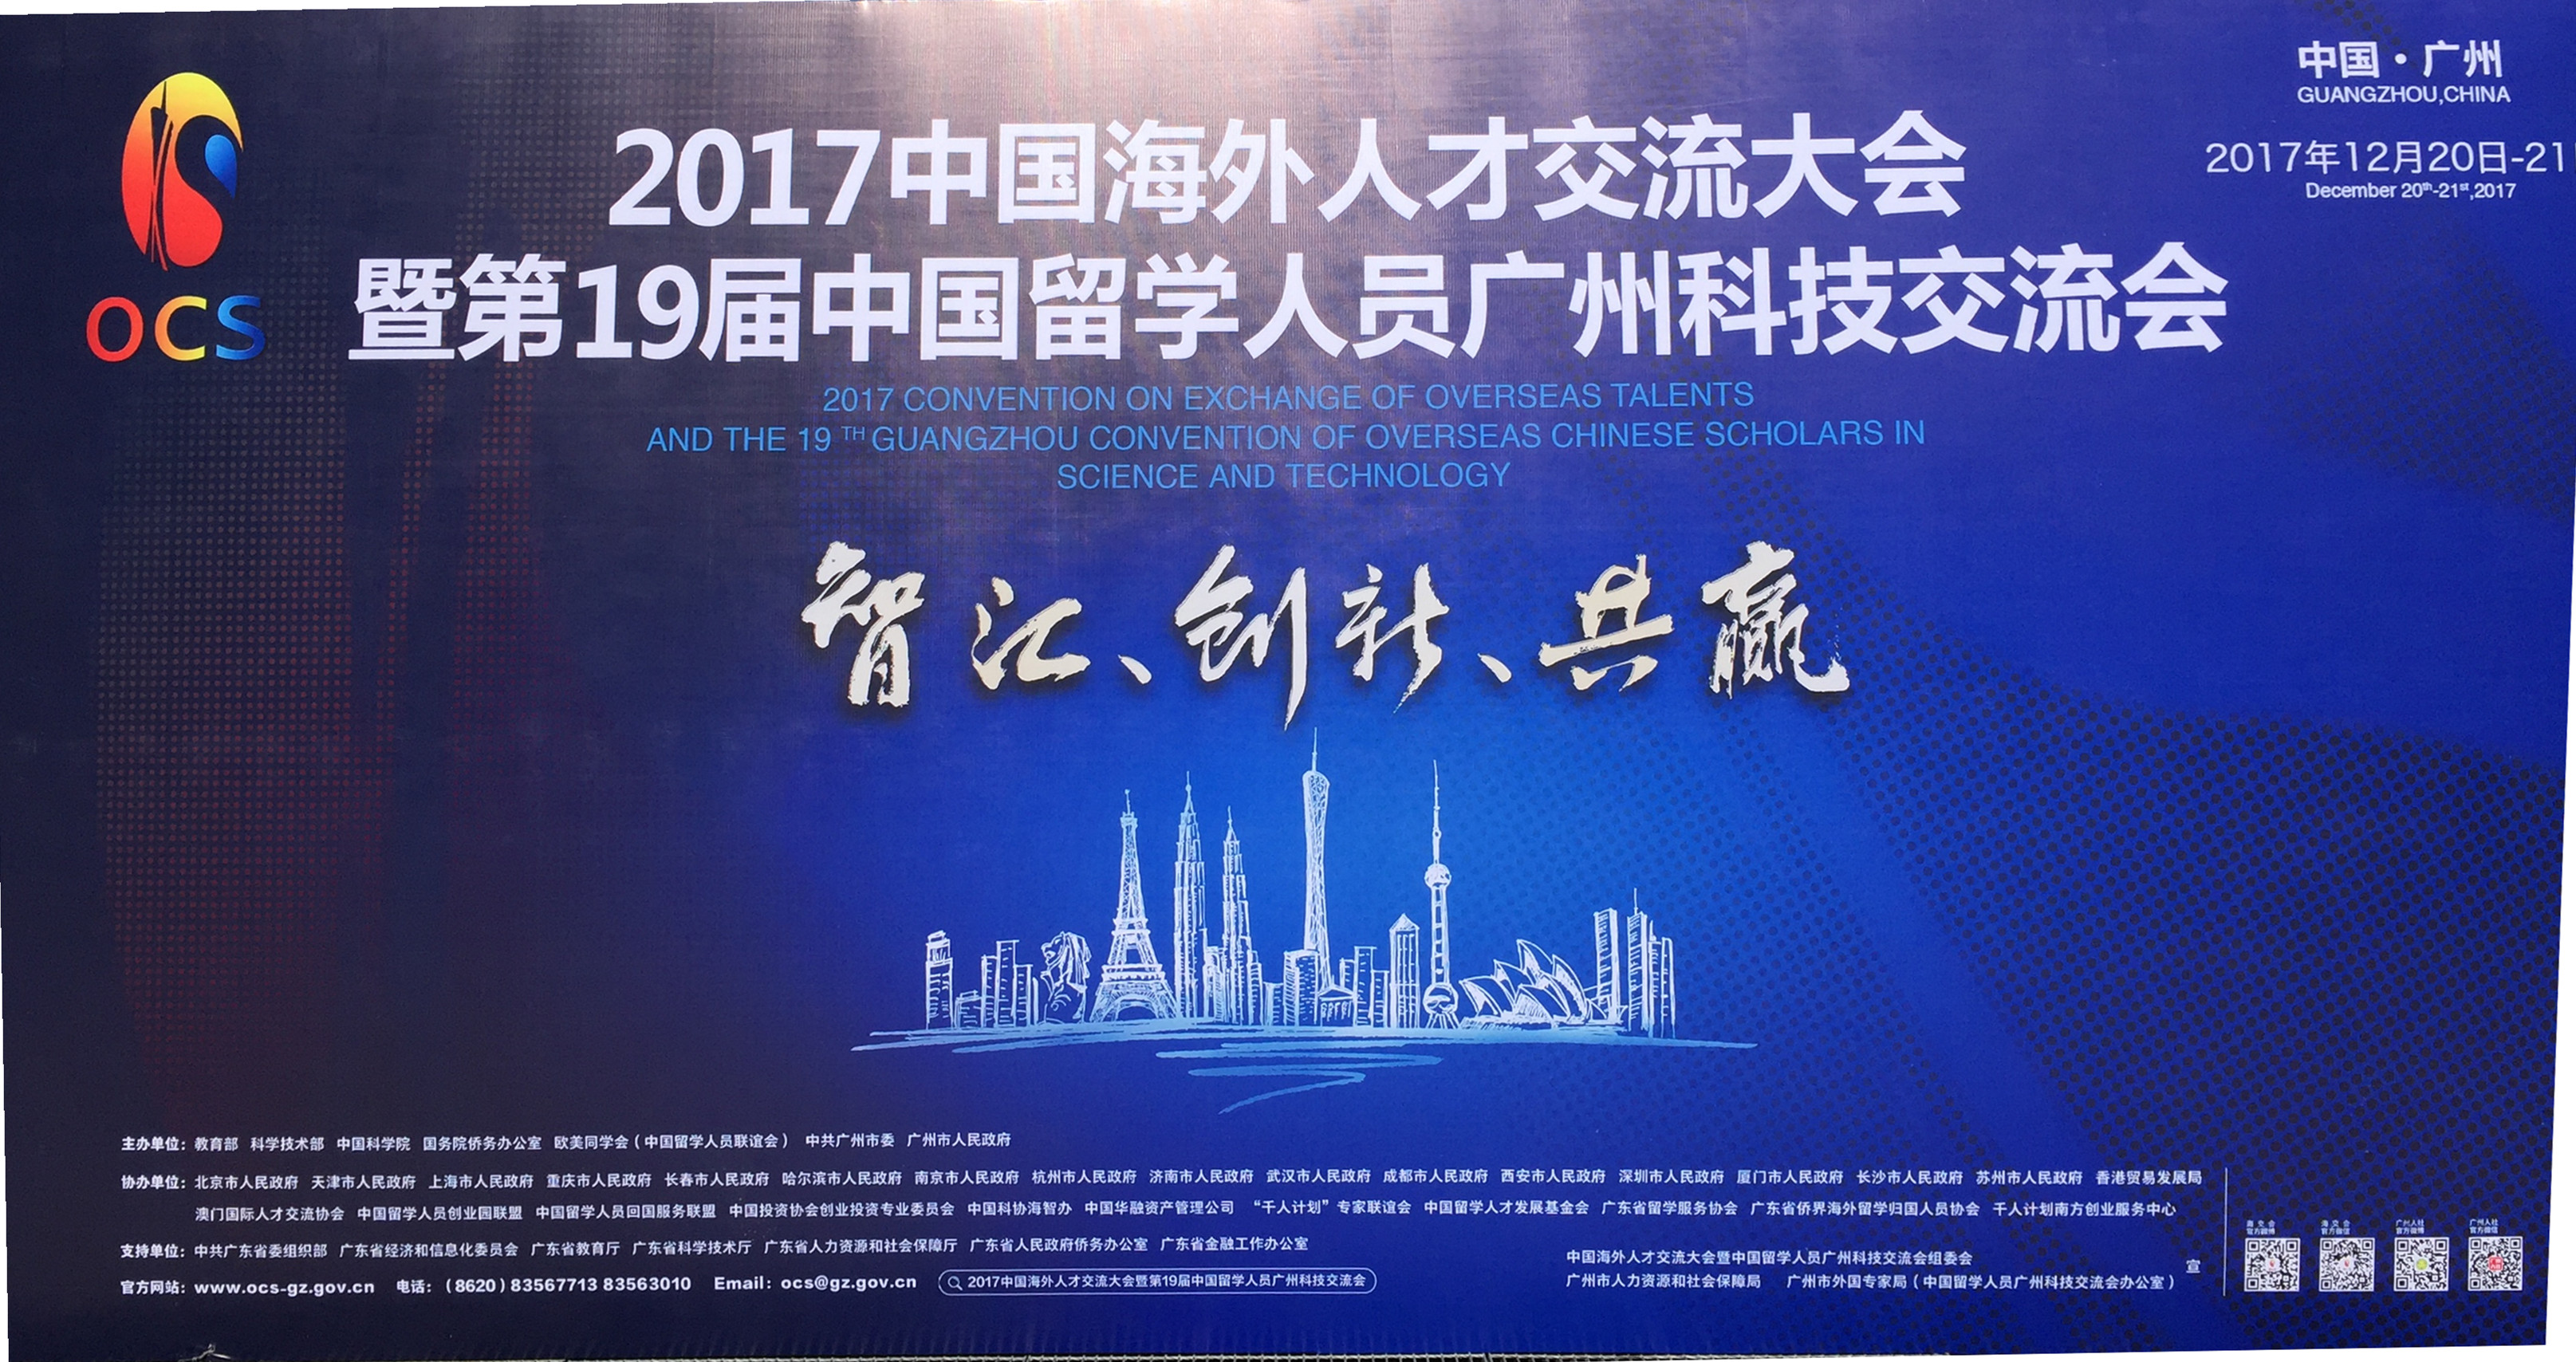 ZBOT 3D printer at the of the guangzhou government to attend the 19th guangzhou convention of overseas chinese scholars in science and technology